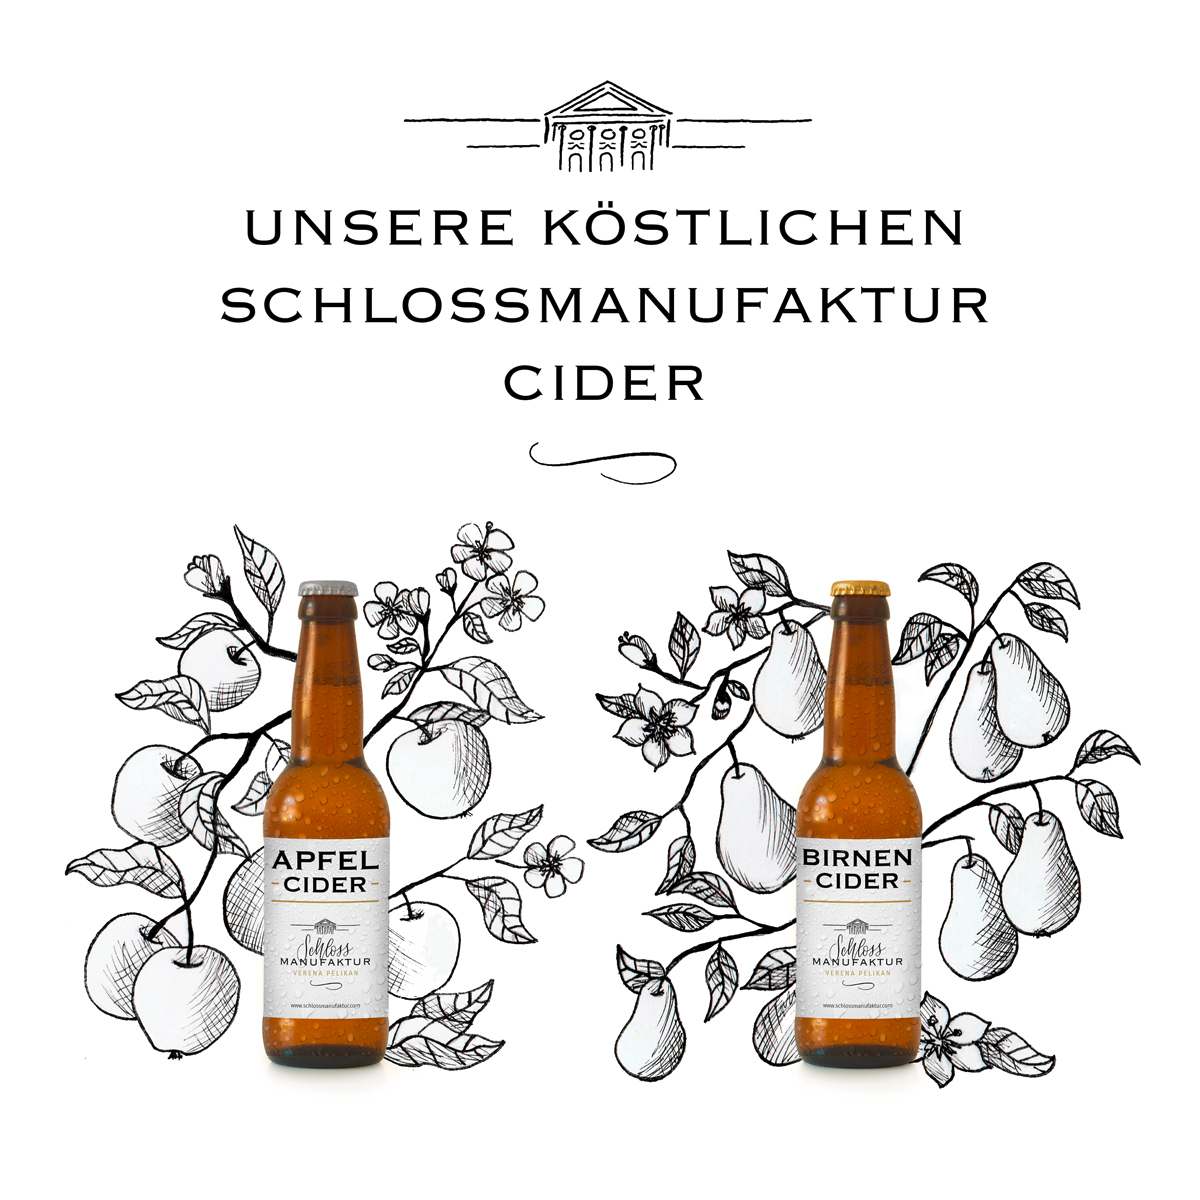 Etikettendesign und Illustration, Schlossmanufaktur Cider